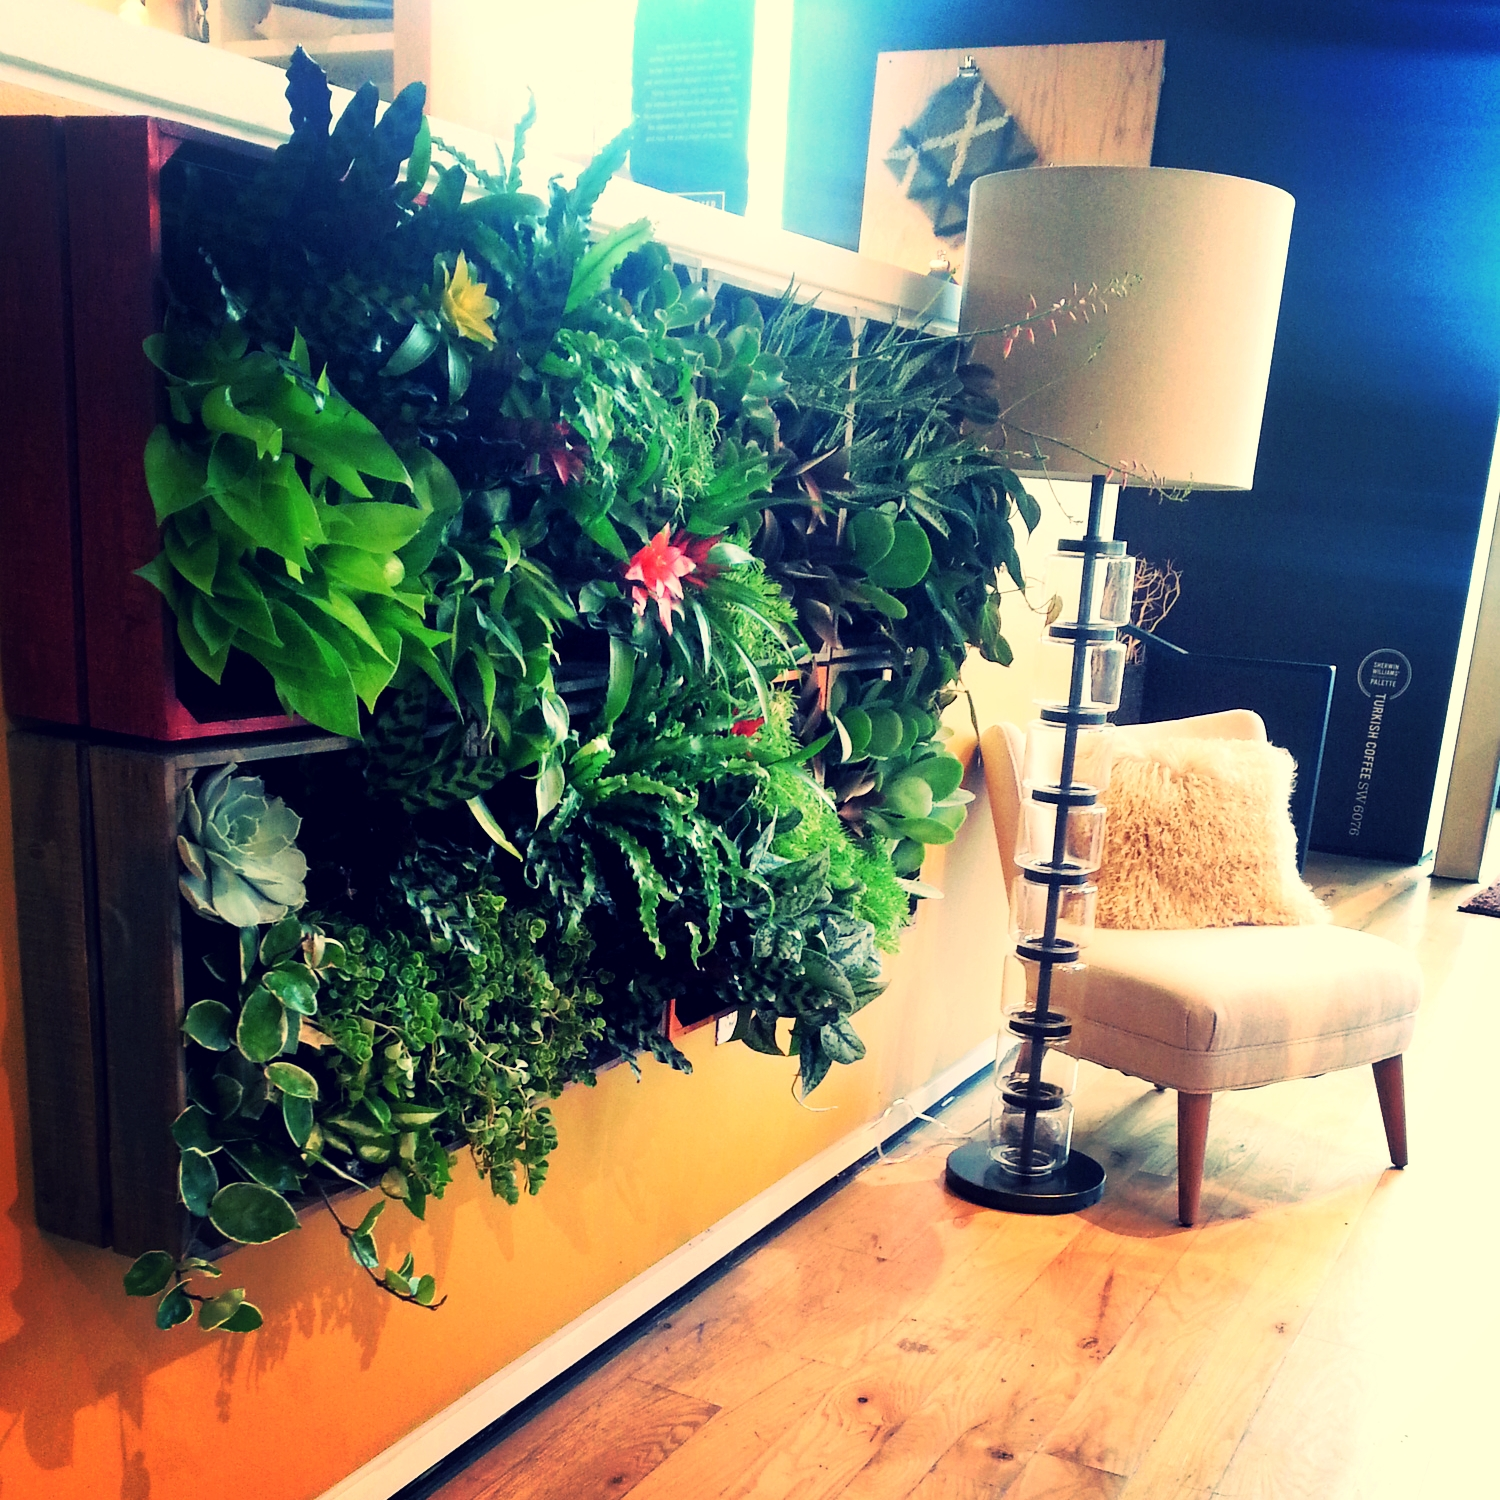 Living-Wall-West-Elm-Orlando.jpg